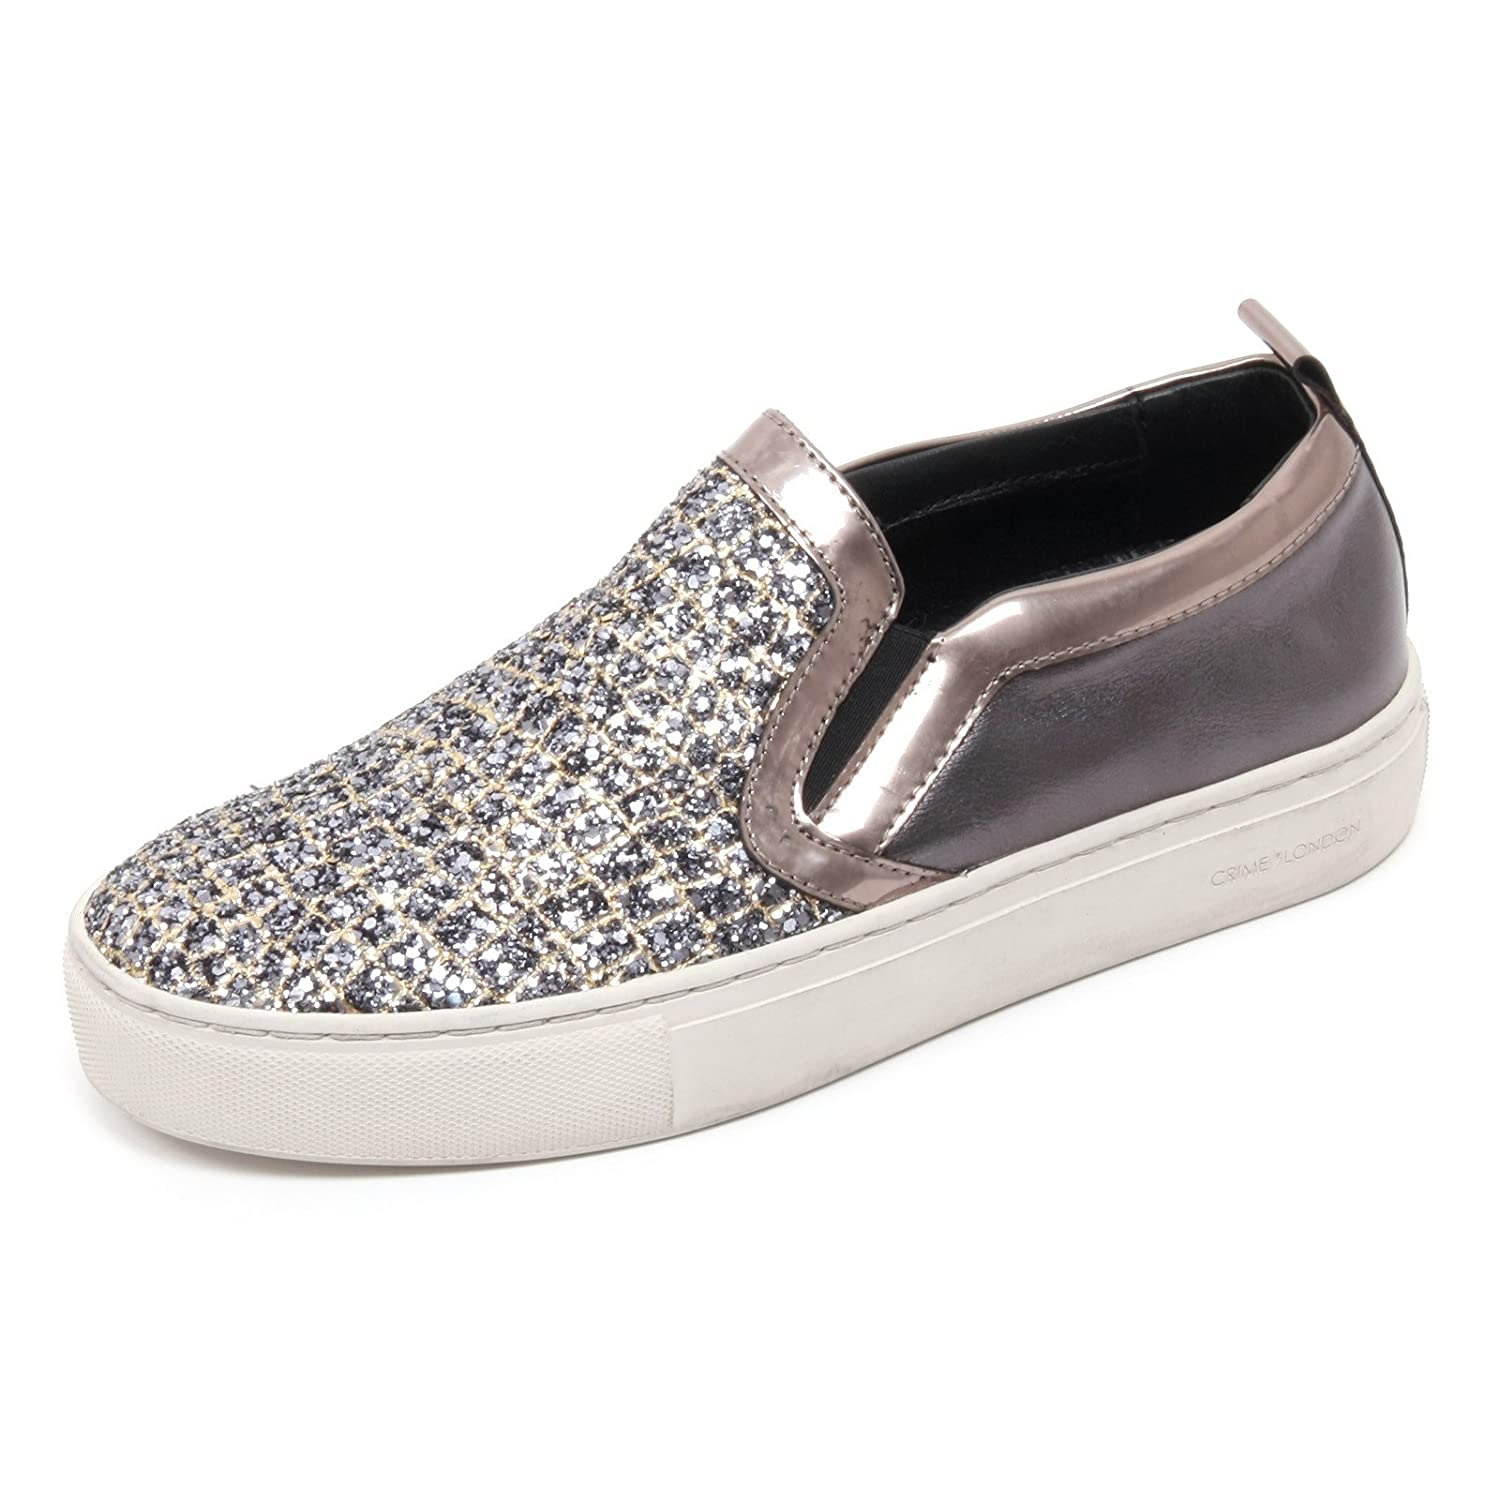 B6624 Turnschuhe damen Crime London Scarpa grau Scuro Glitter schuhe Slip on Woman